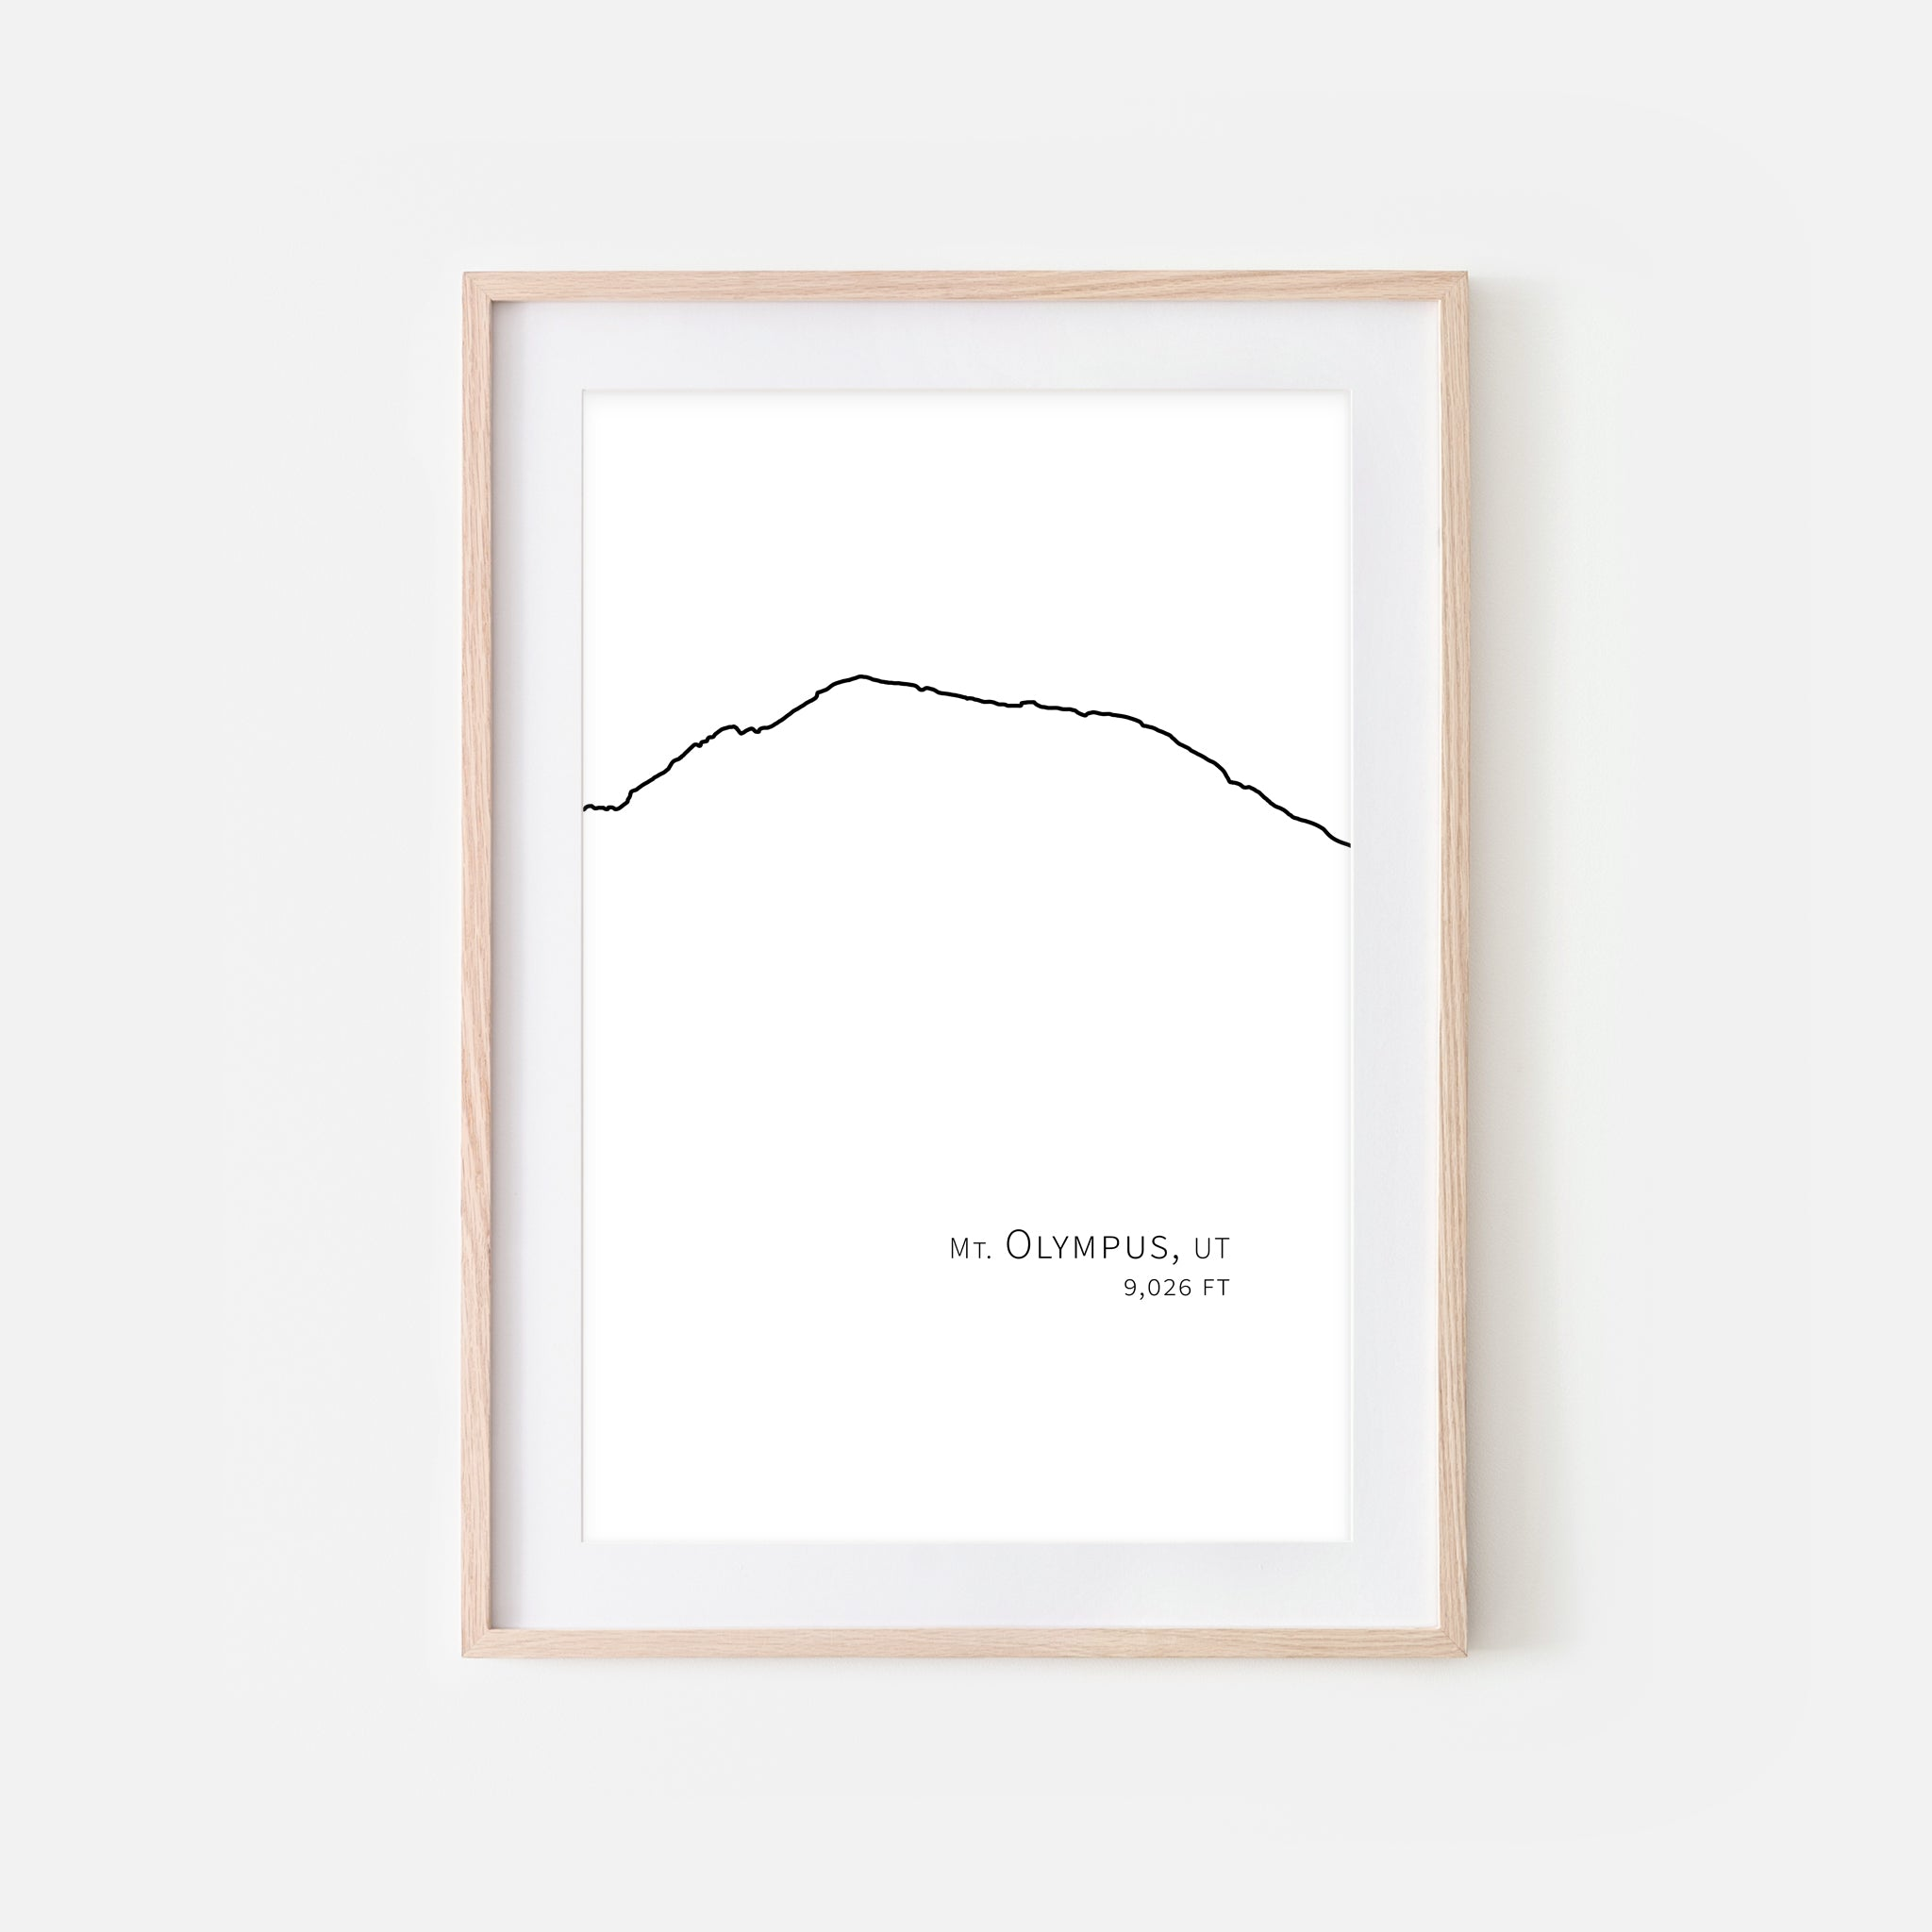 Mount Olympus Utah UT USA Mountain Wall Art Print - Minimalist Peak Summit Elevation Contour One Line Drawing - Abstract Landscape - Black and White Home Decor Climbing Hiking Decor - Large Small Shipped Paper Print or Poster - OR - Downloadable Art Print DIY Digital Printable Instant Download - By Happy Cat Prints